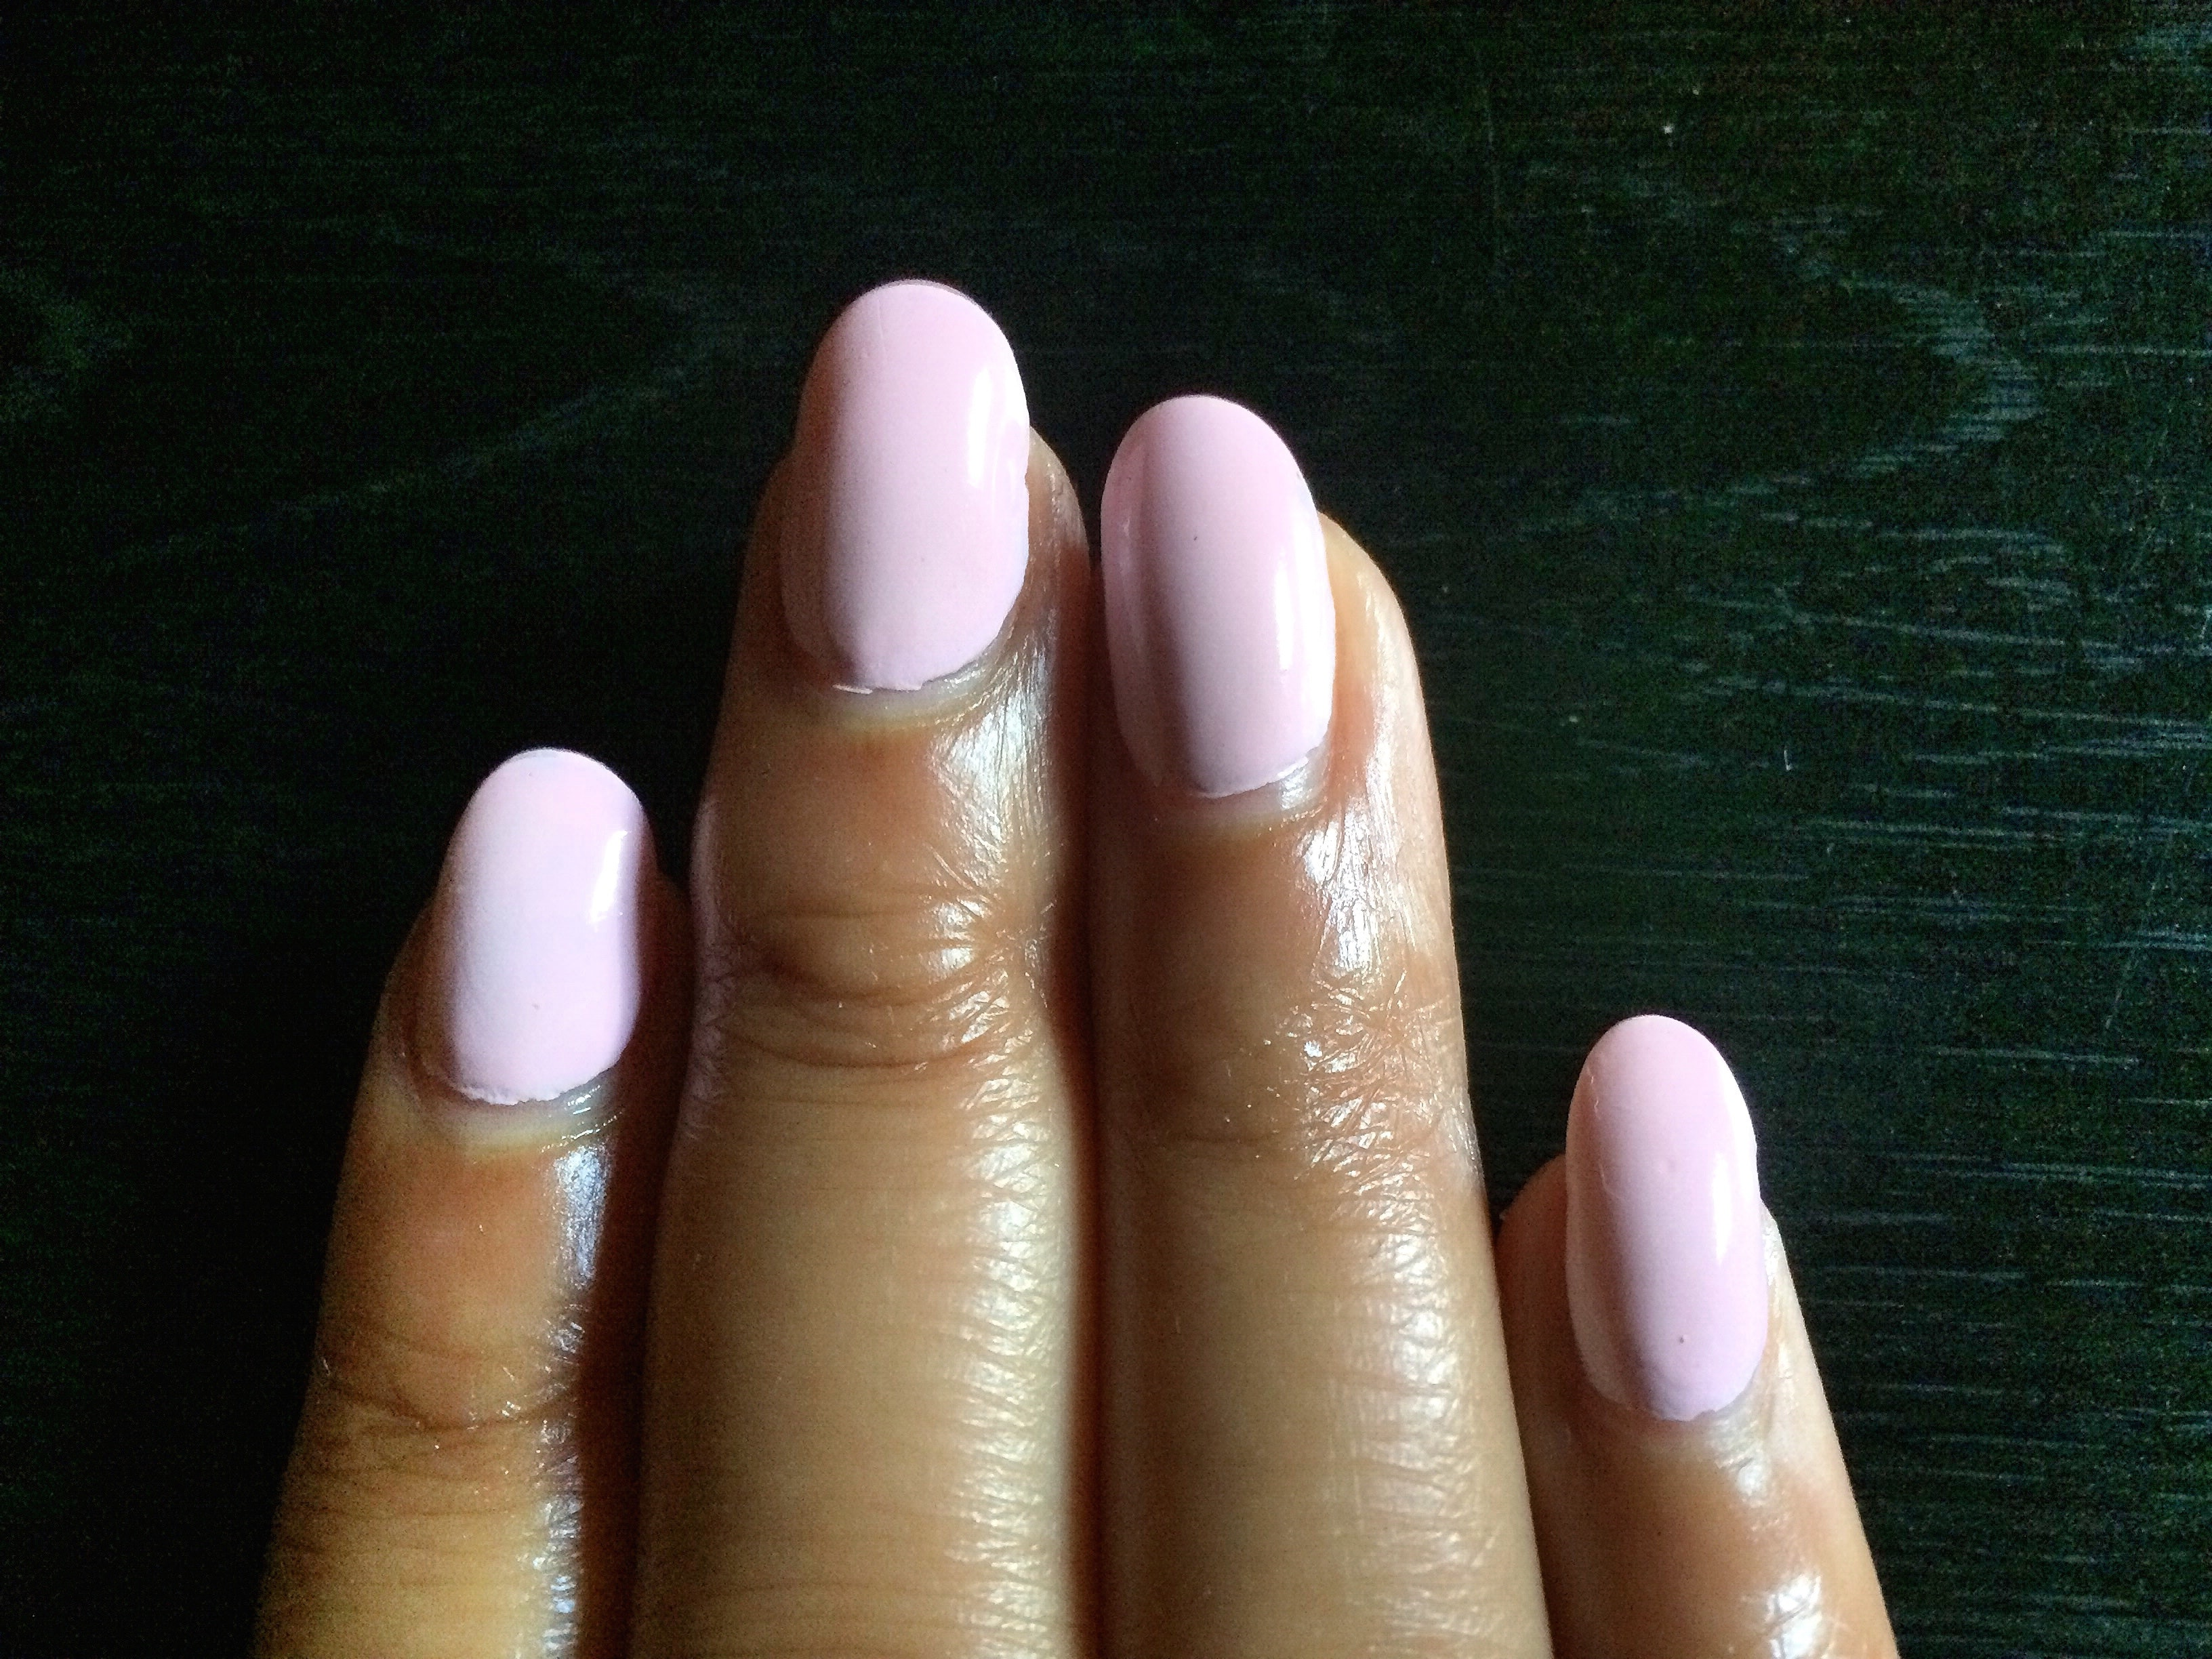 How To Do Ariana Grande\'s Nails In All Of Their Blush Pink, Oval Glory